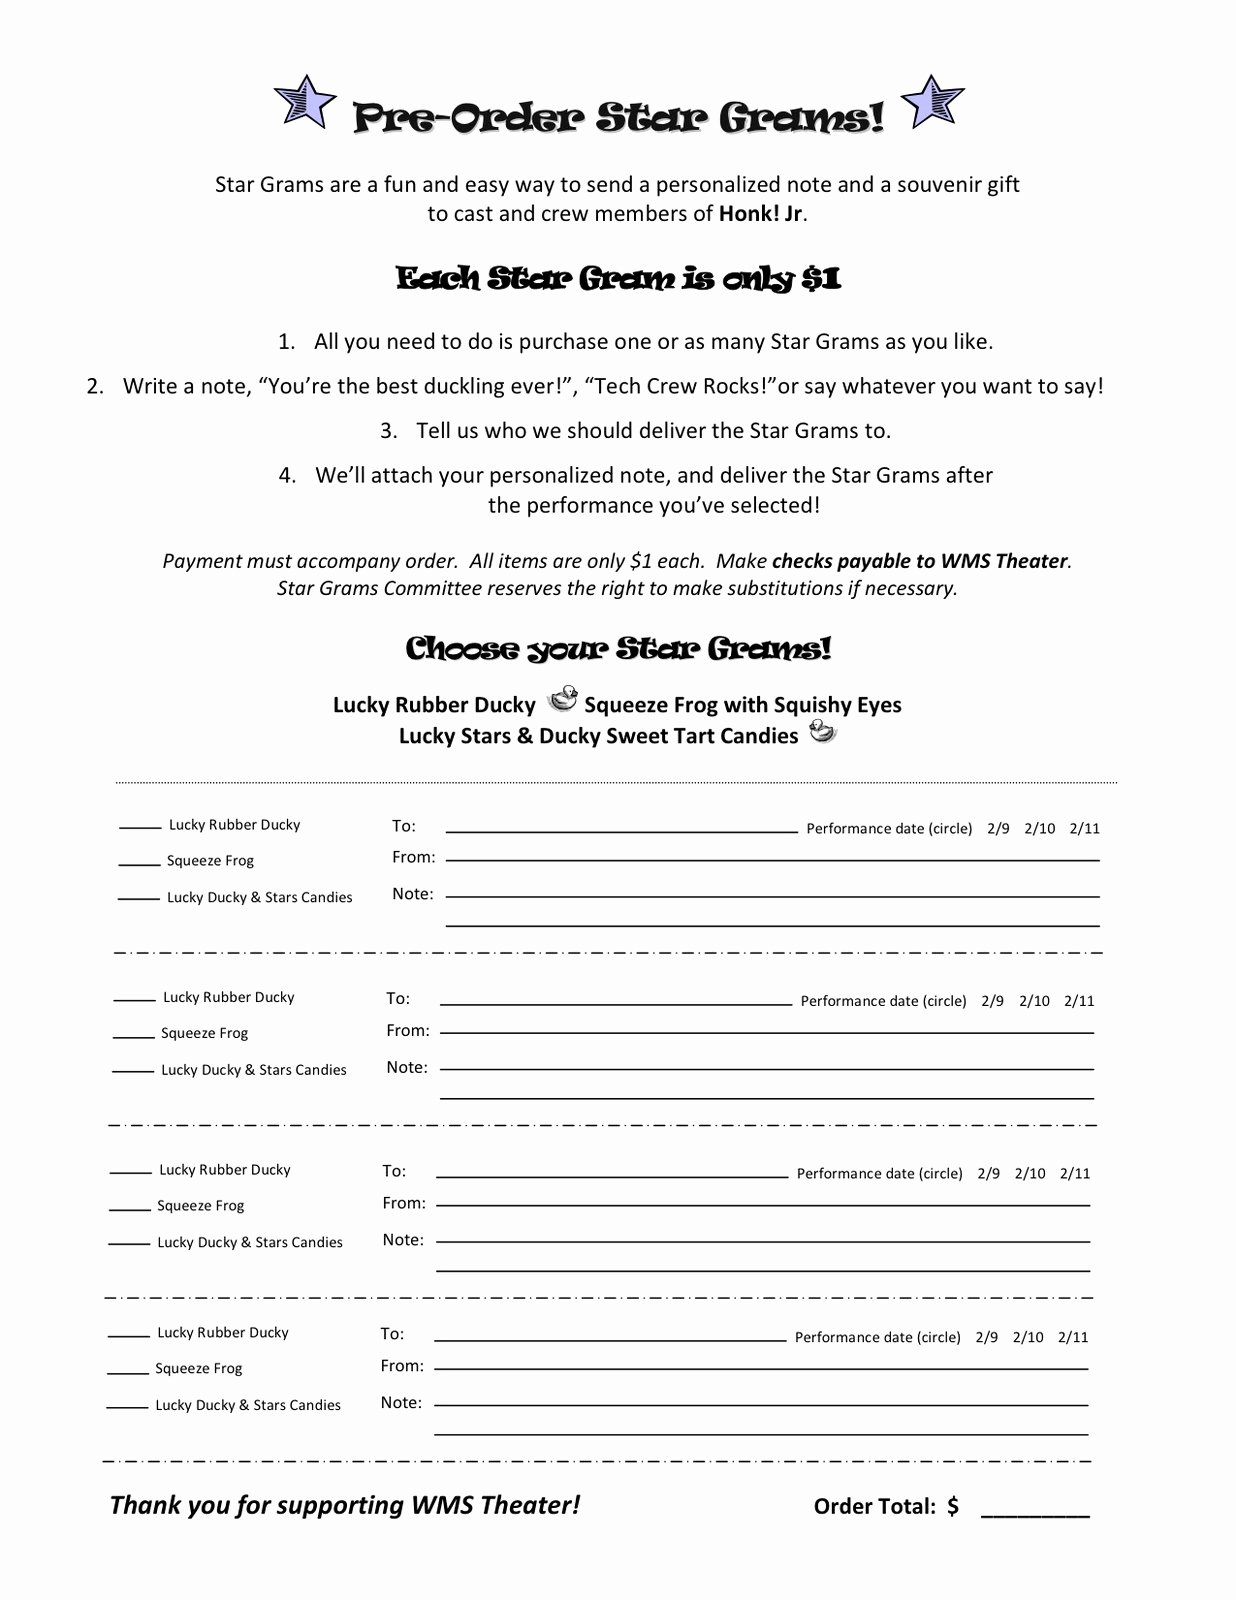 Pre order form Template Beautiful Wyoming Middle School theater Stargrams Pre order form